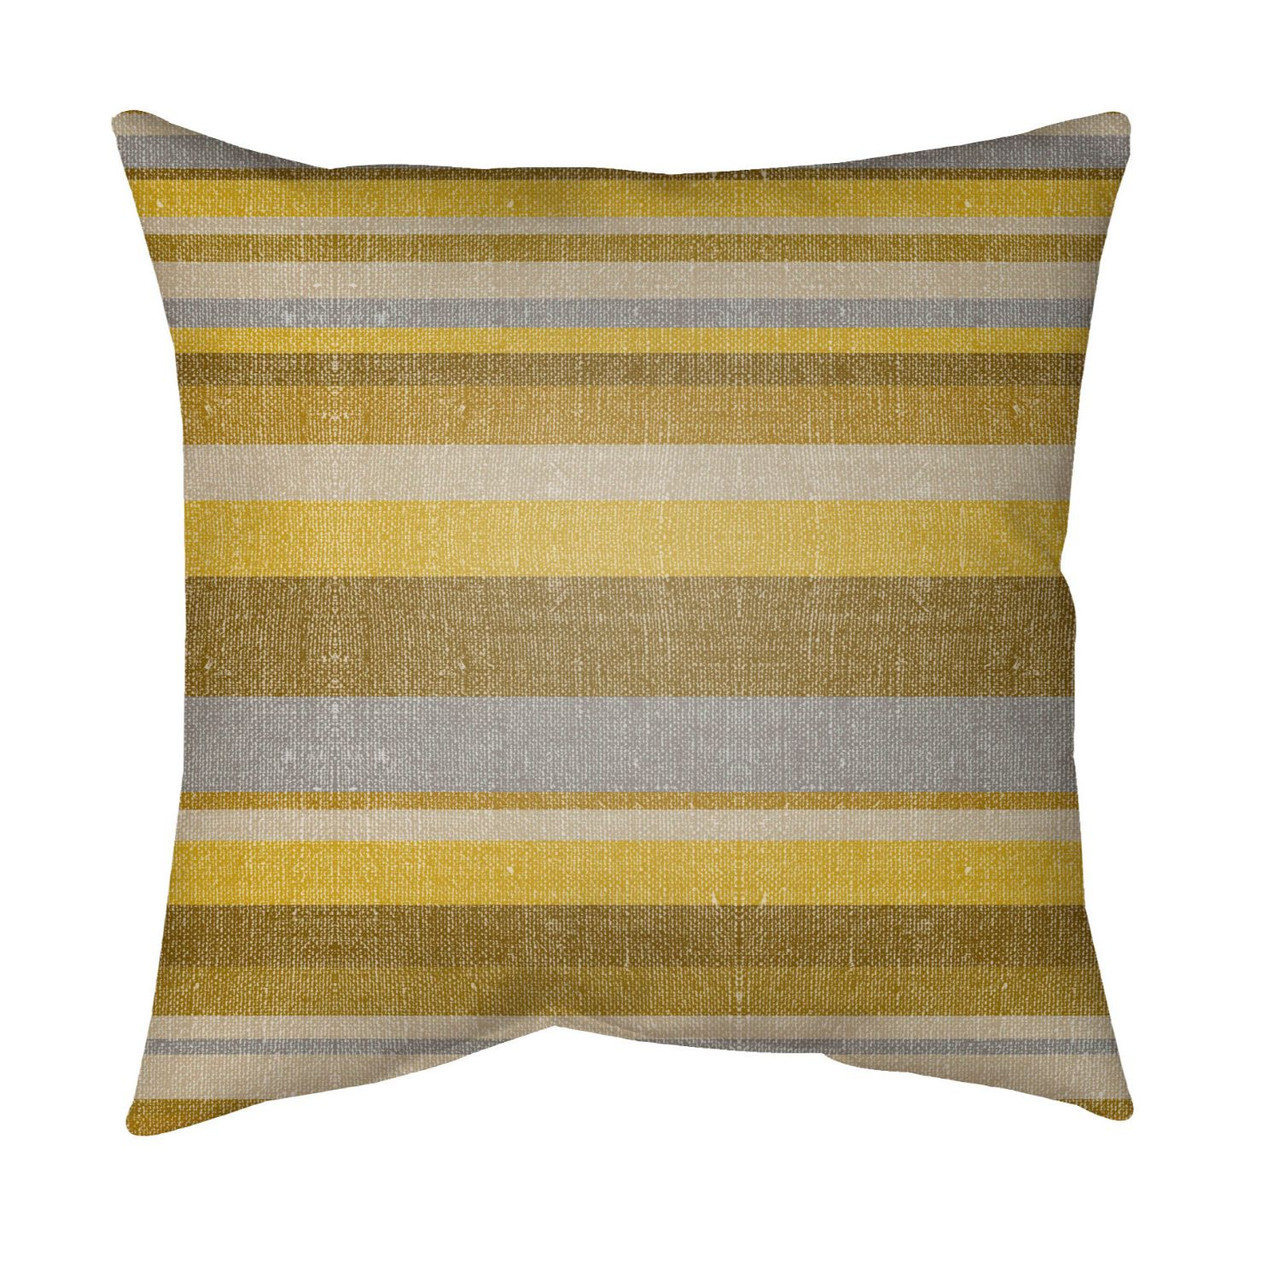 16 Mustard Yellow Gray Striped Square Throw Pillow Cover Christmas Central